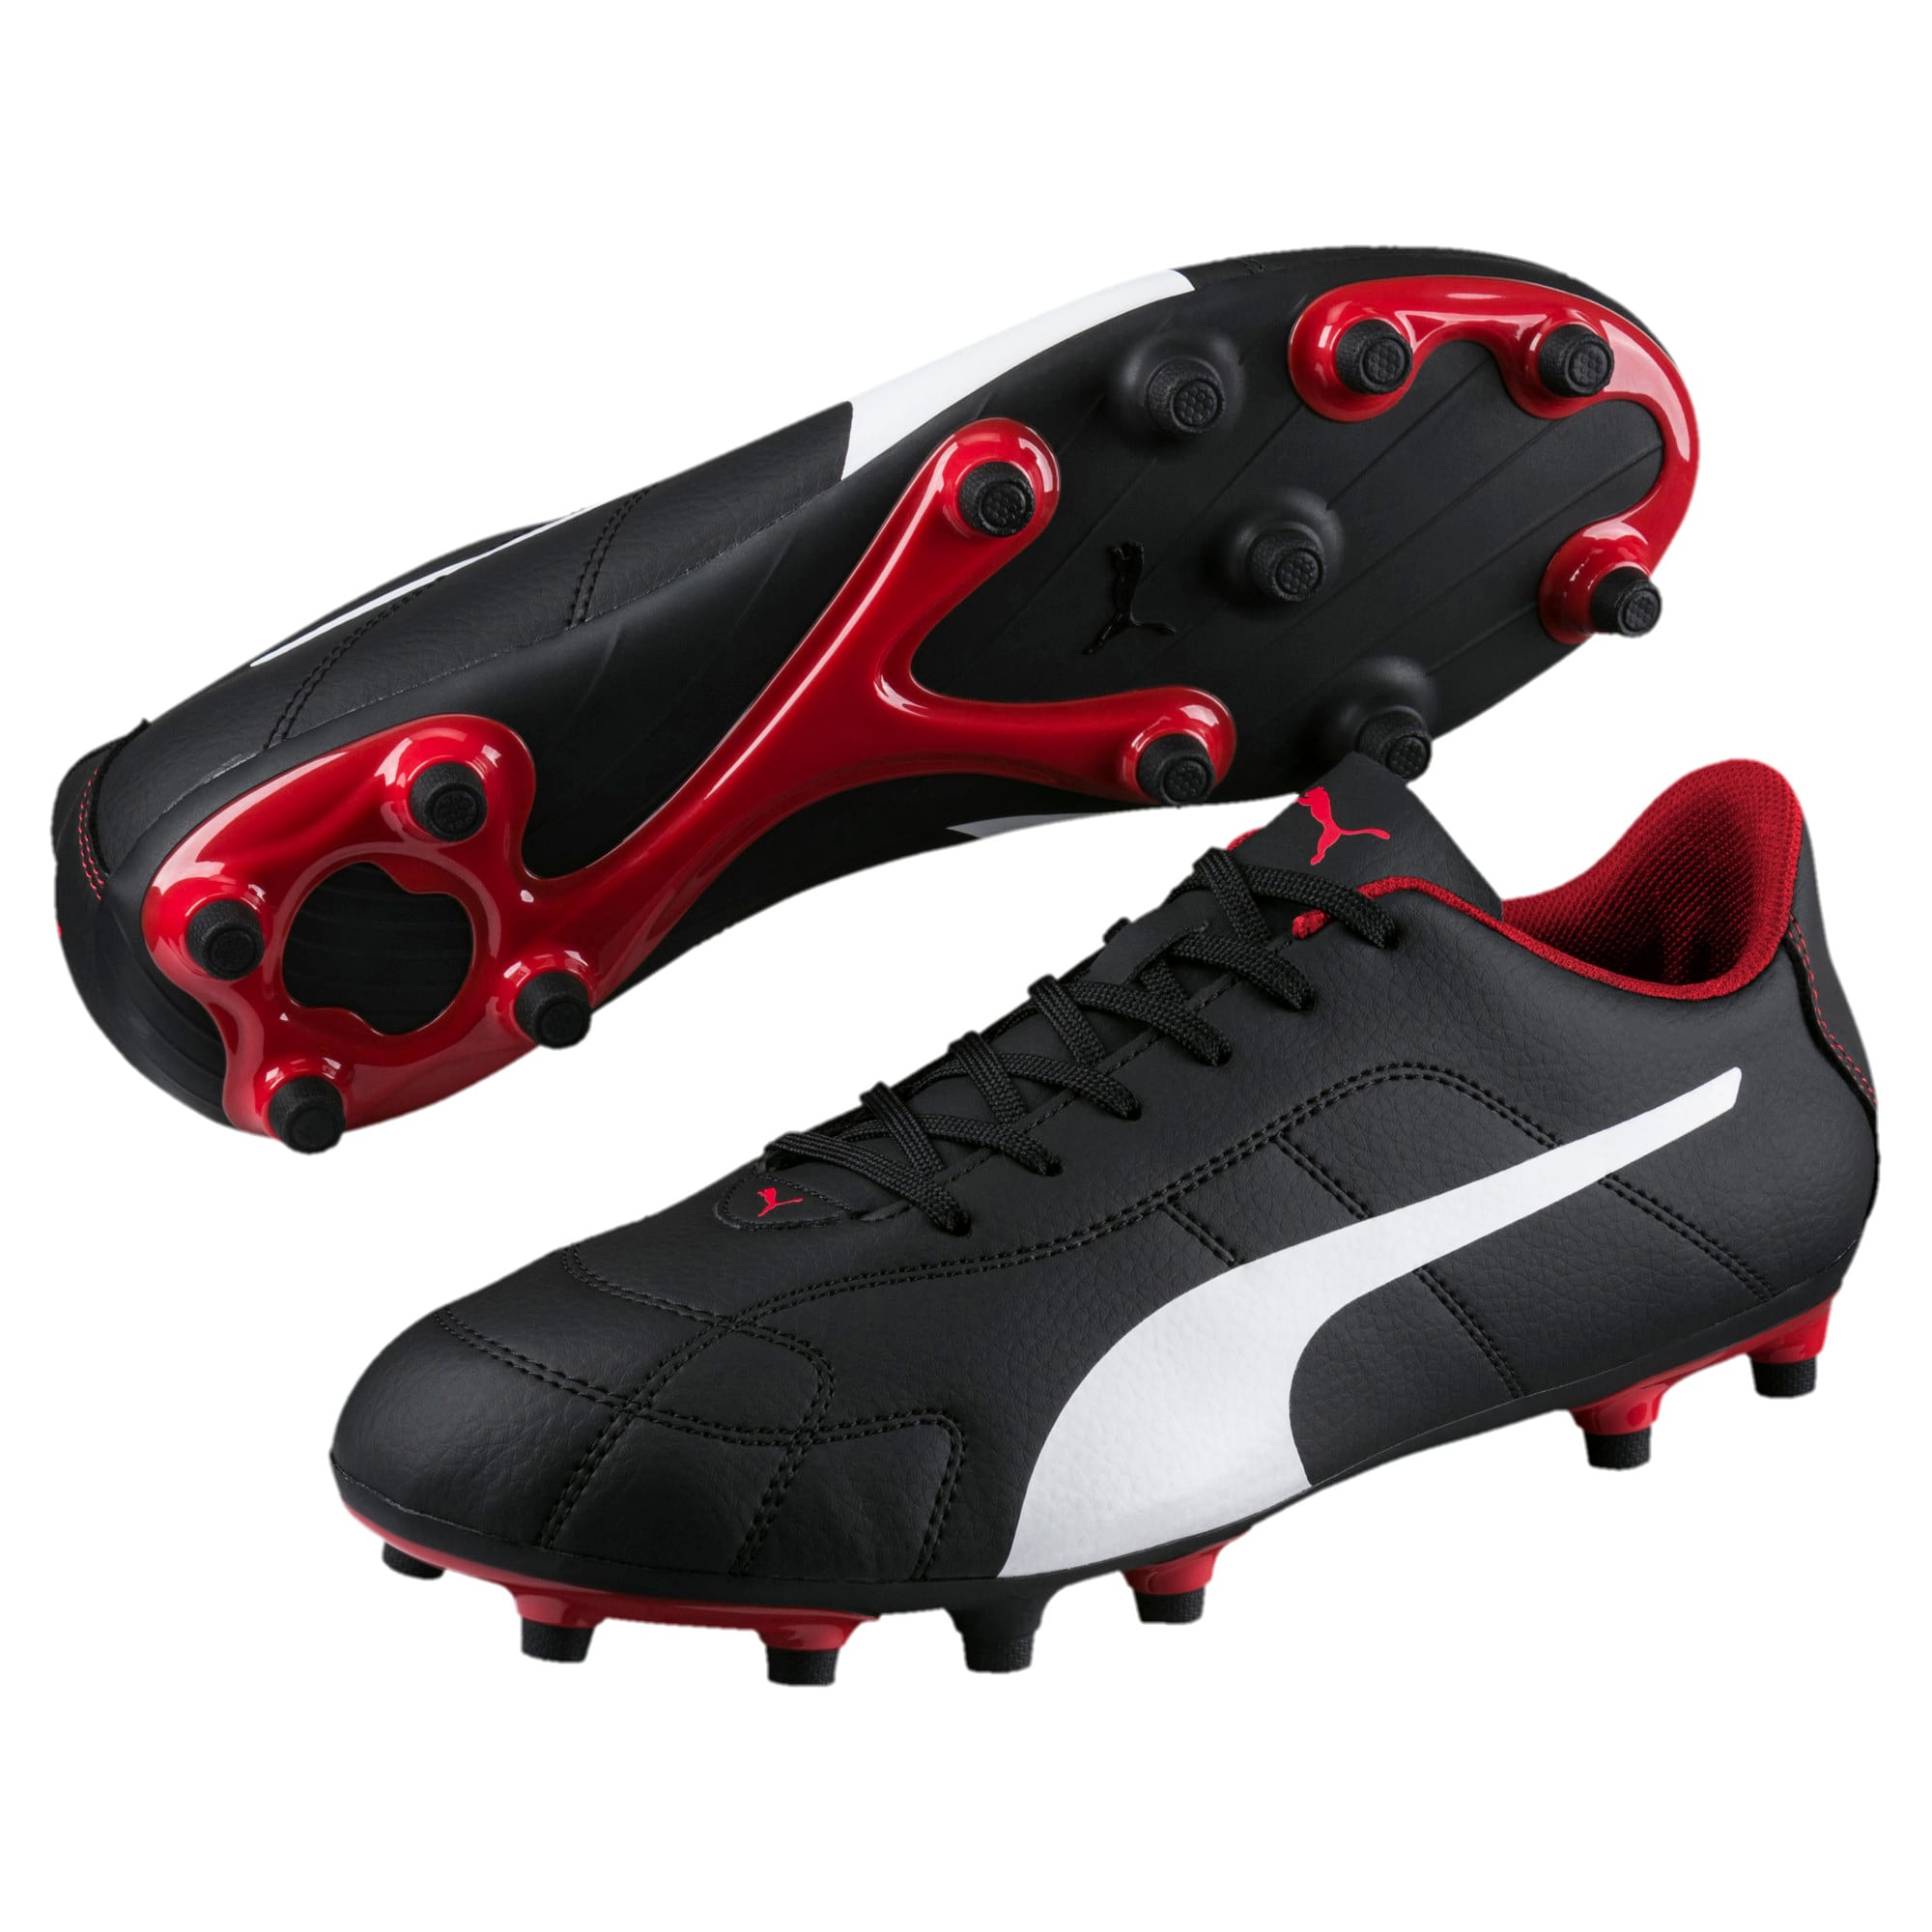 Thumbnail 2 of Classico C Firm Ground Men's Football Boots, Black-White-Red, medium-IND